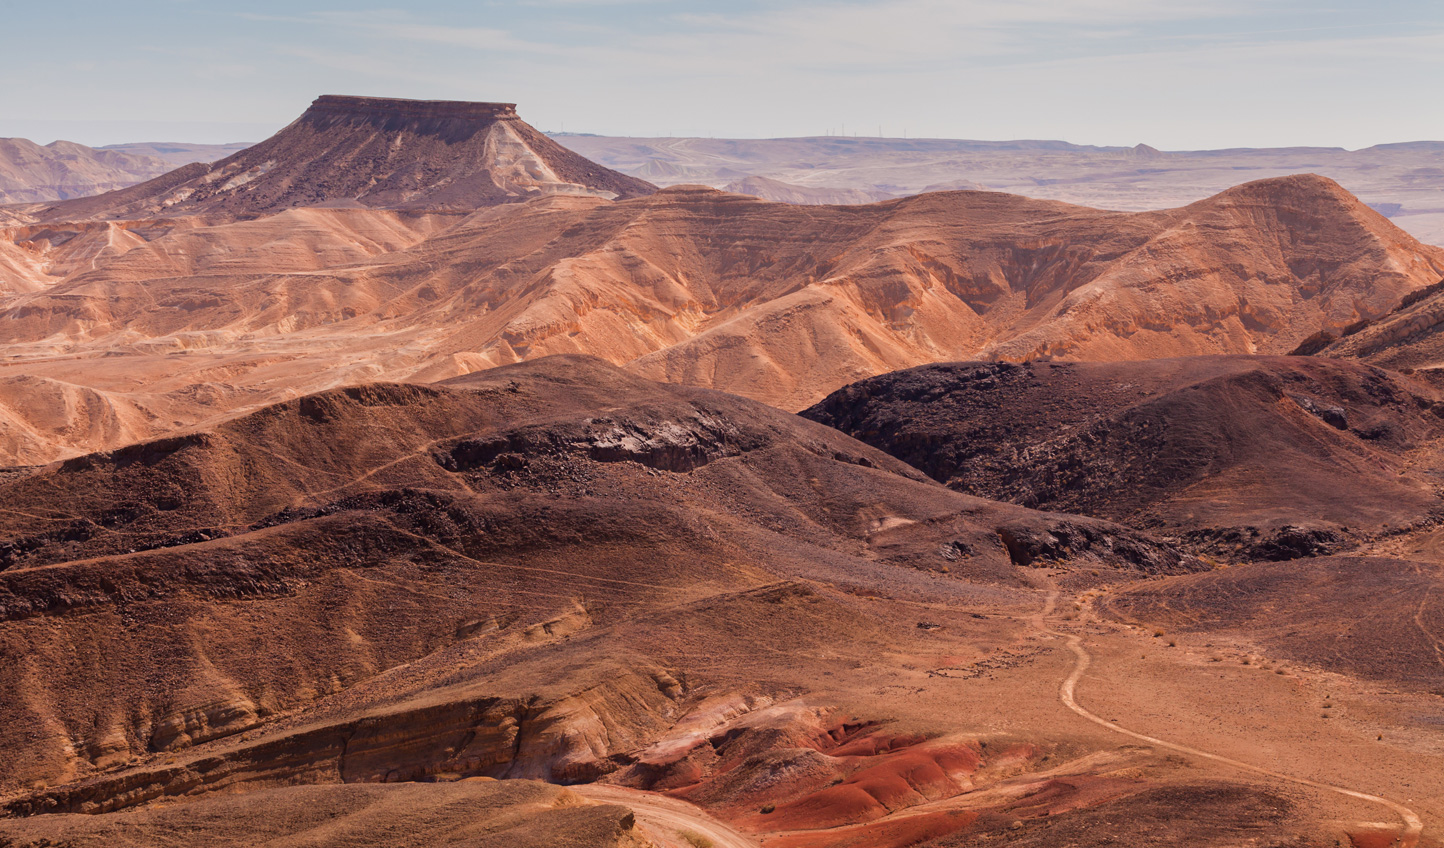 Get a taste for adventure out at Ramon Crater